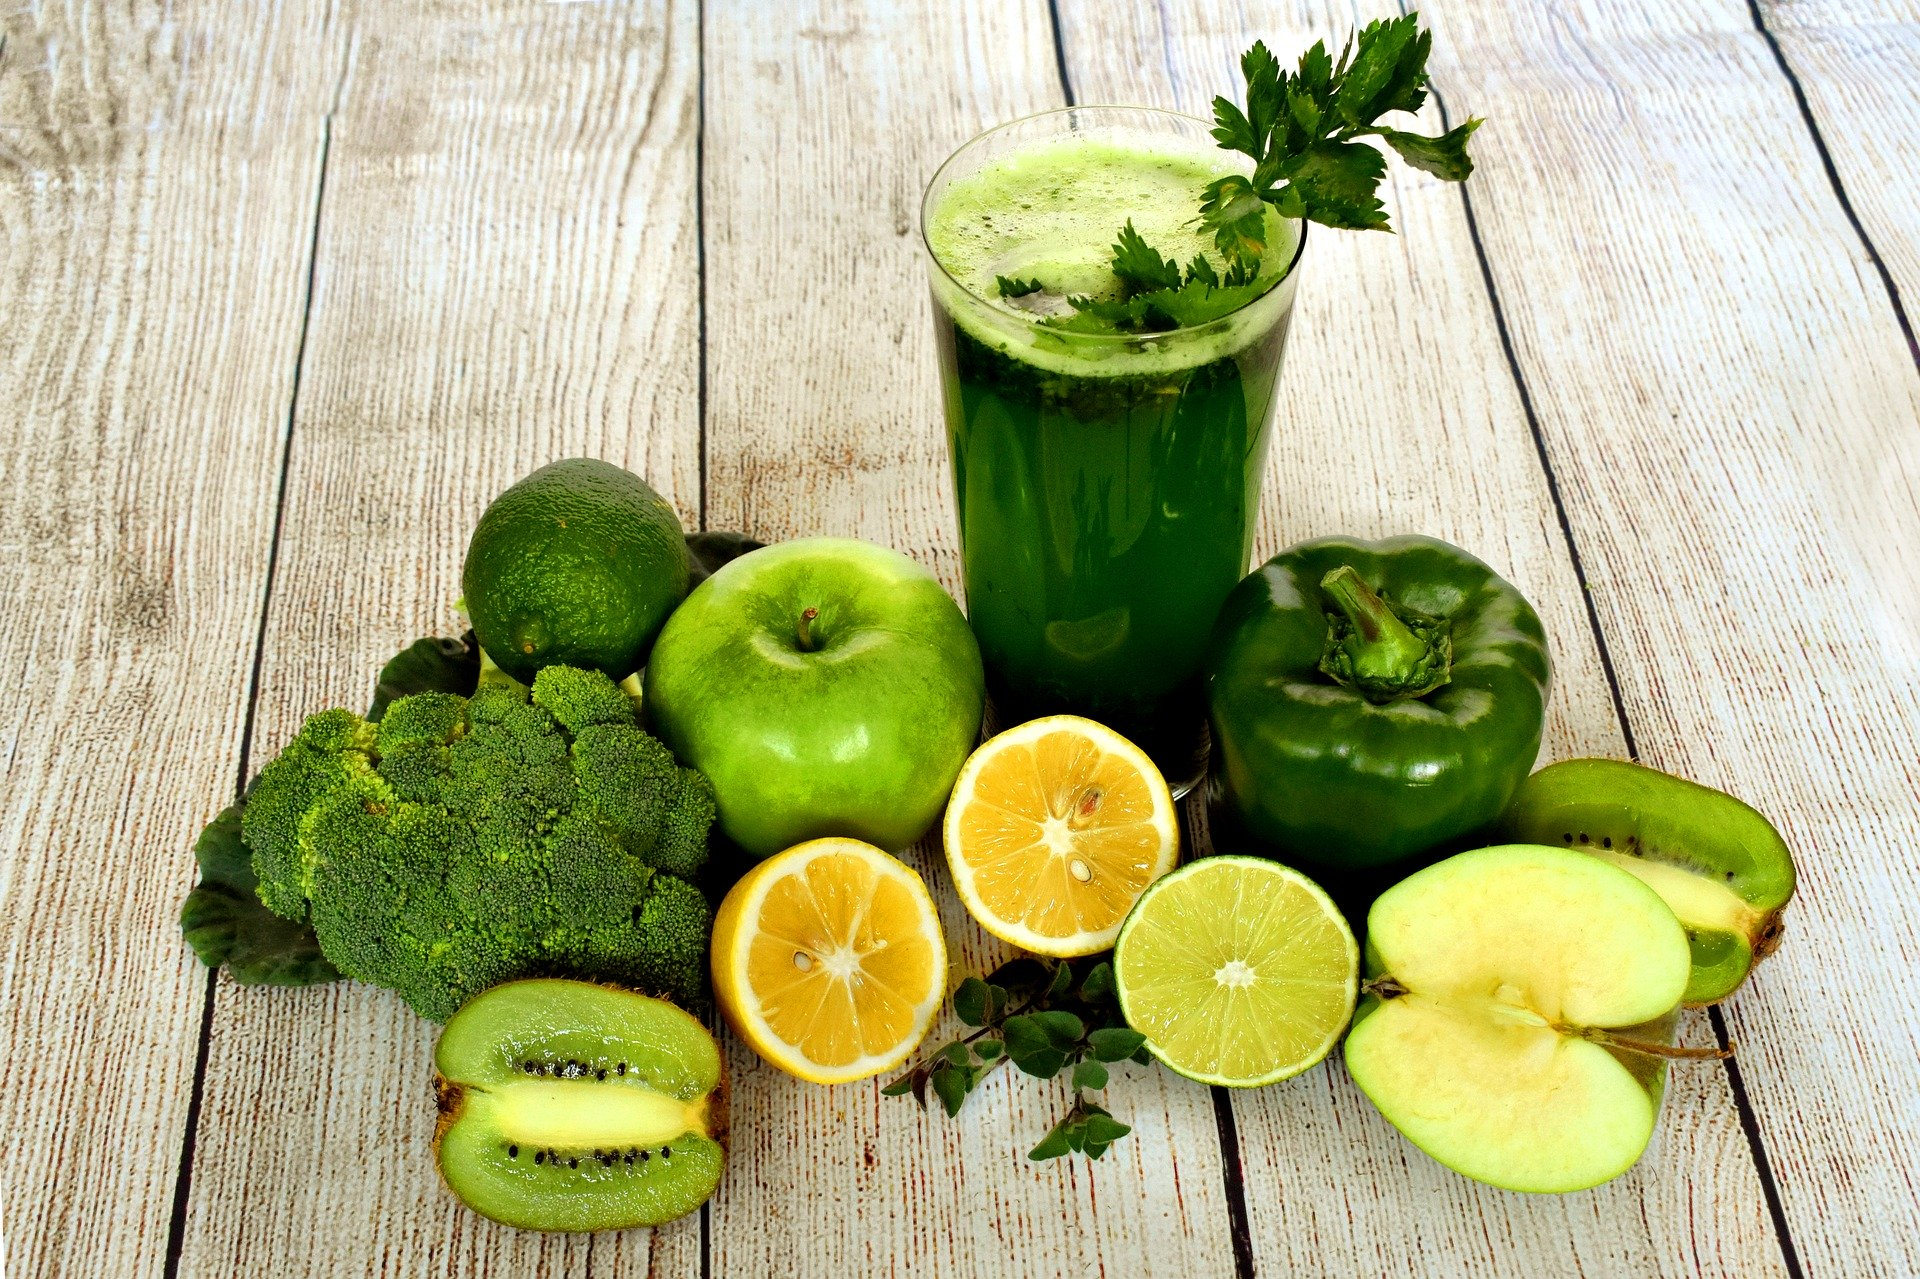 Green juice with a bunch of green veggies and fruits